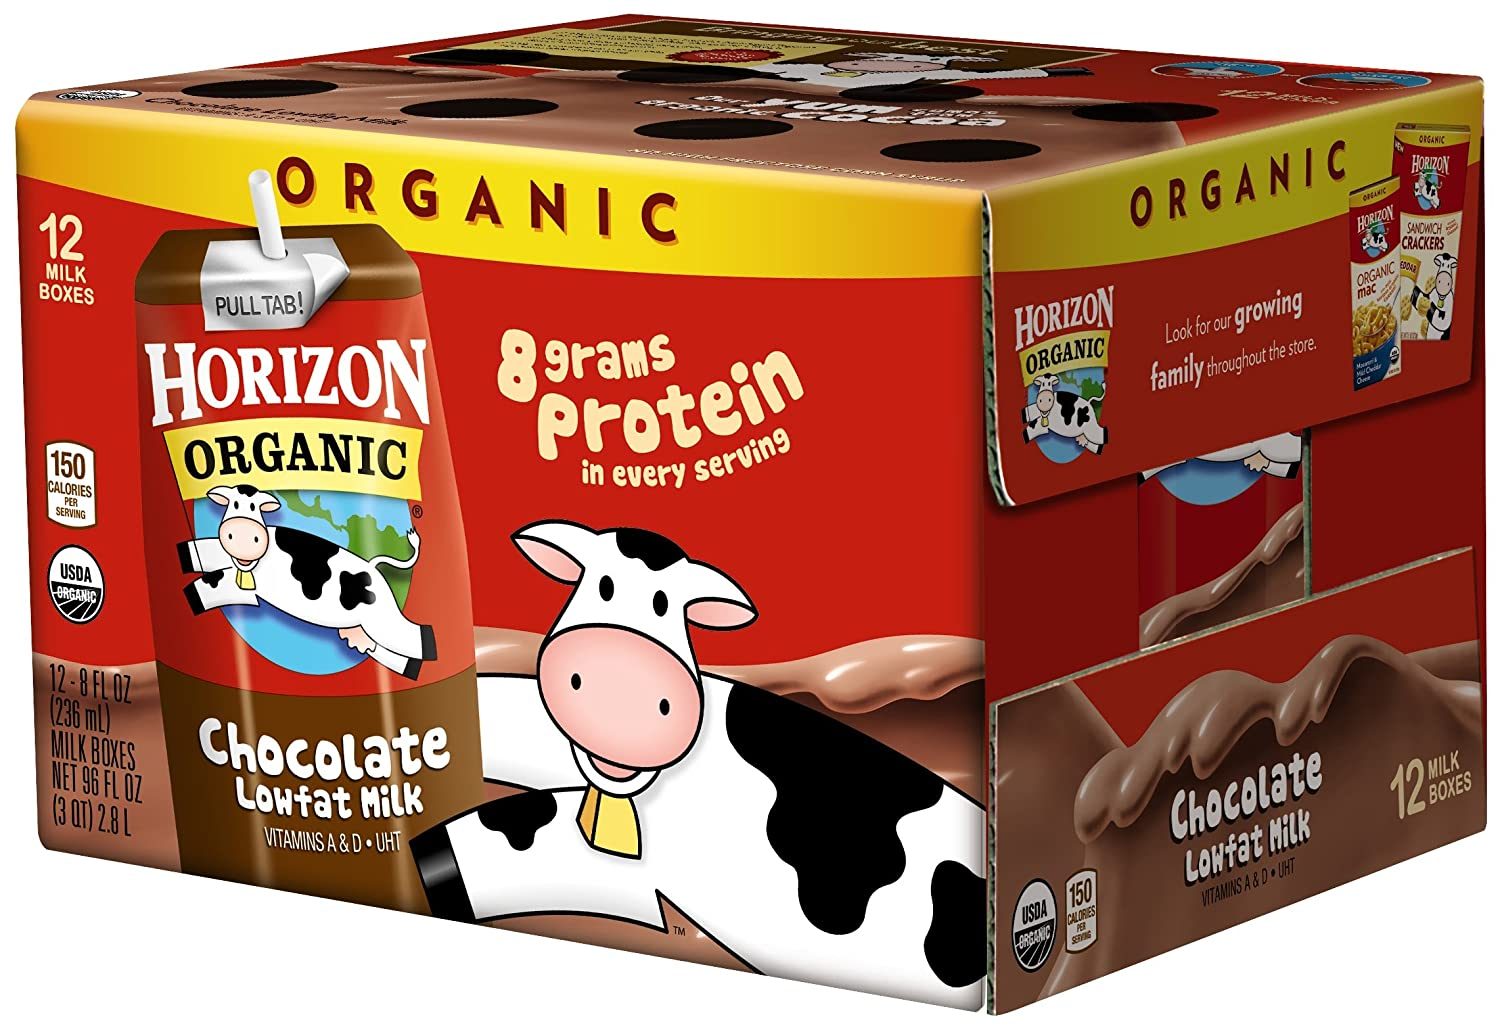 B0019KCUMG Horizon Organic UHT Chocolate Milk Boxes, 1% Single Serve, 8 Oz., 12 Count 811TkUdvjfL